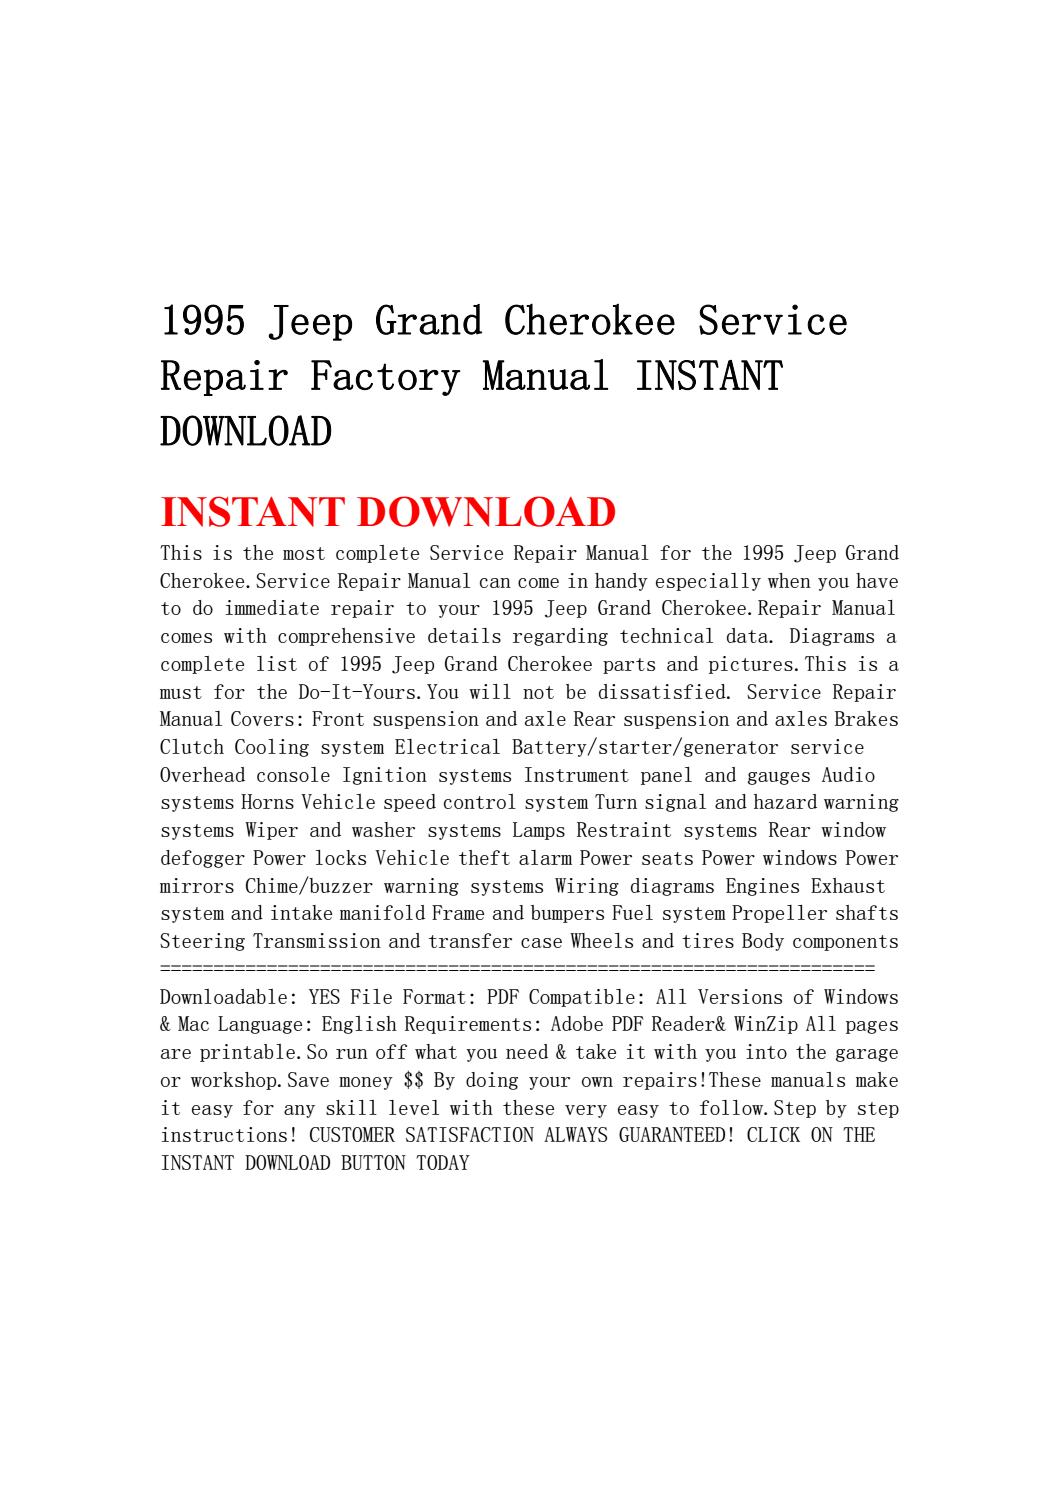 1995 Jeep Grand Cherokee Service Repair Factory Manual Instant 95 Wiper Wiring Diagram Download By Jhsefnshe Issuu